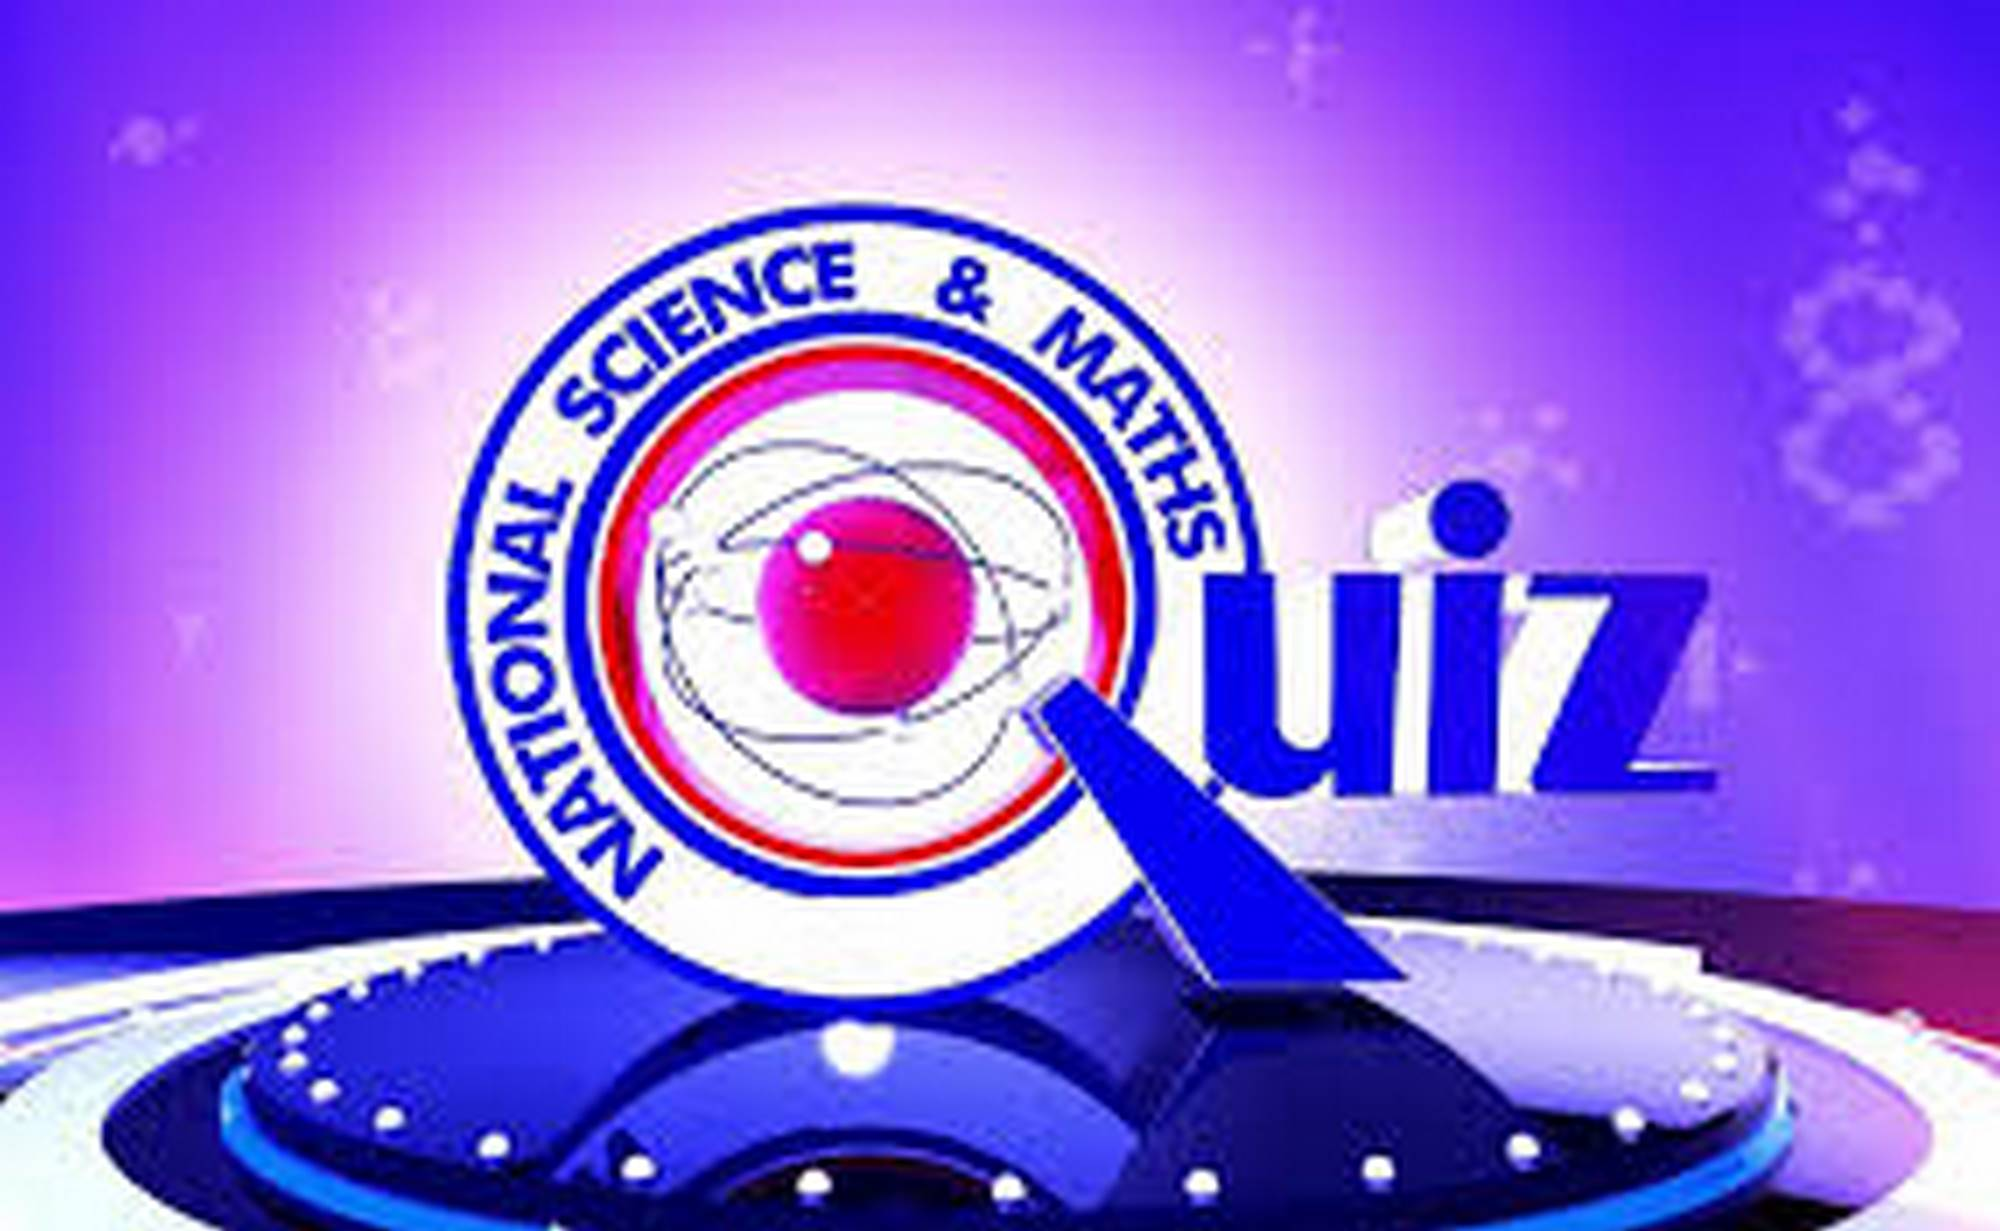 2021 National Science and Maths Quiz Regional Qualifiers